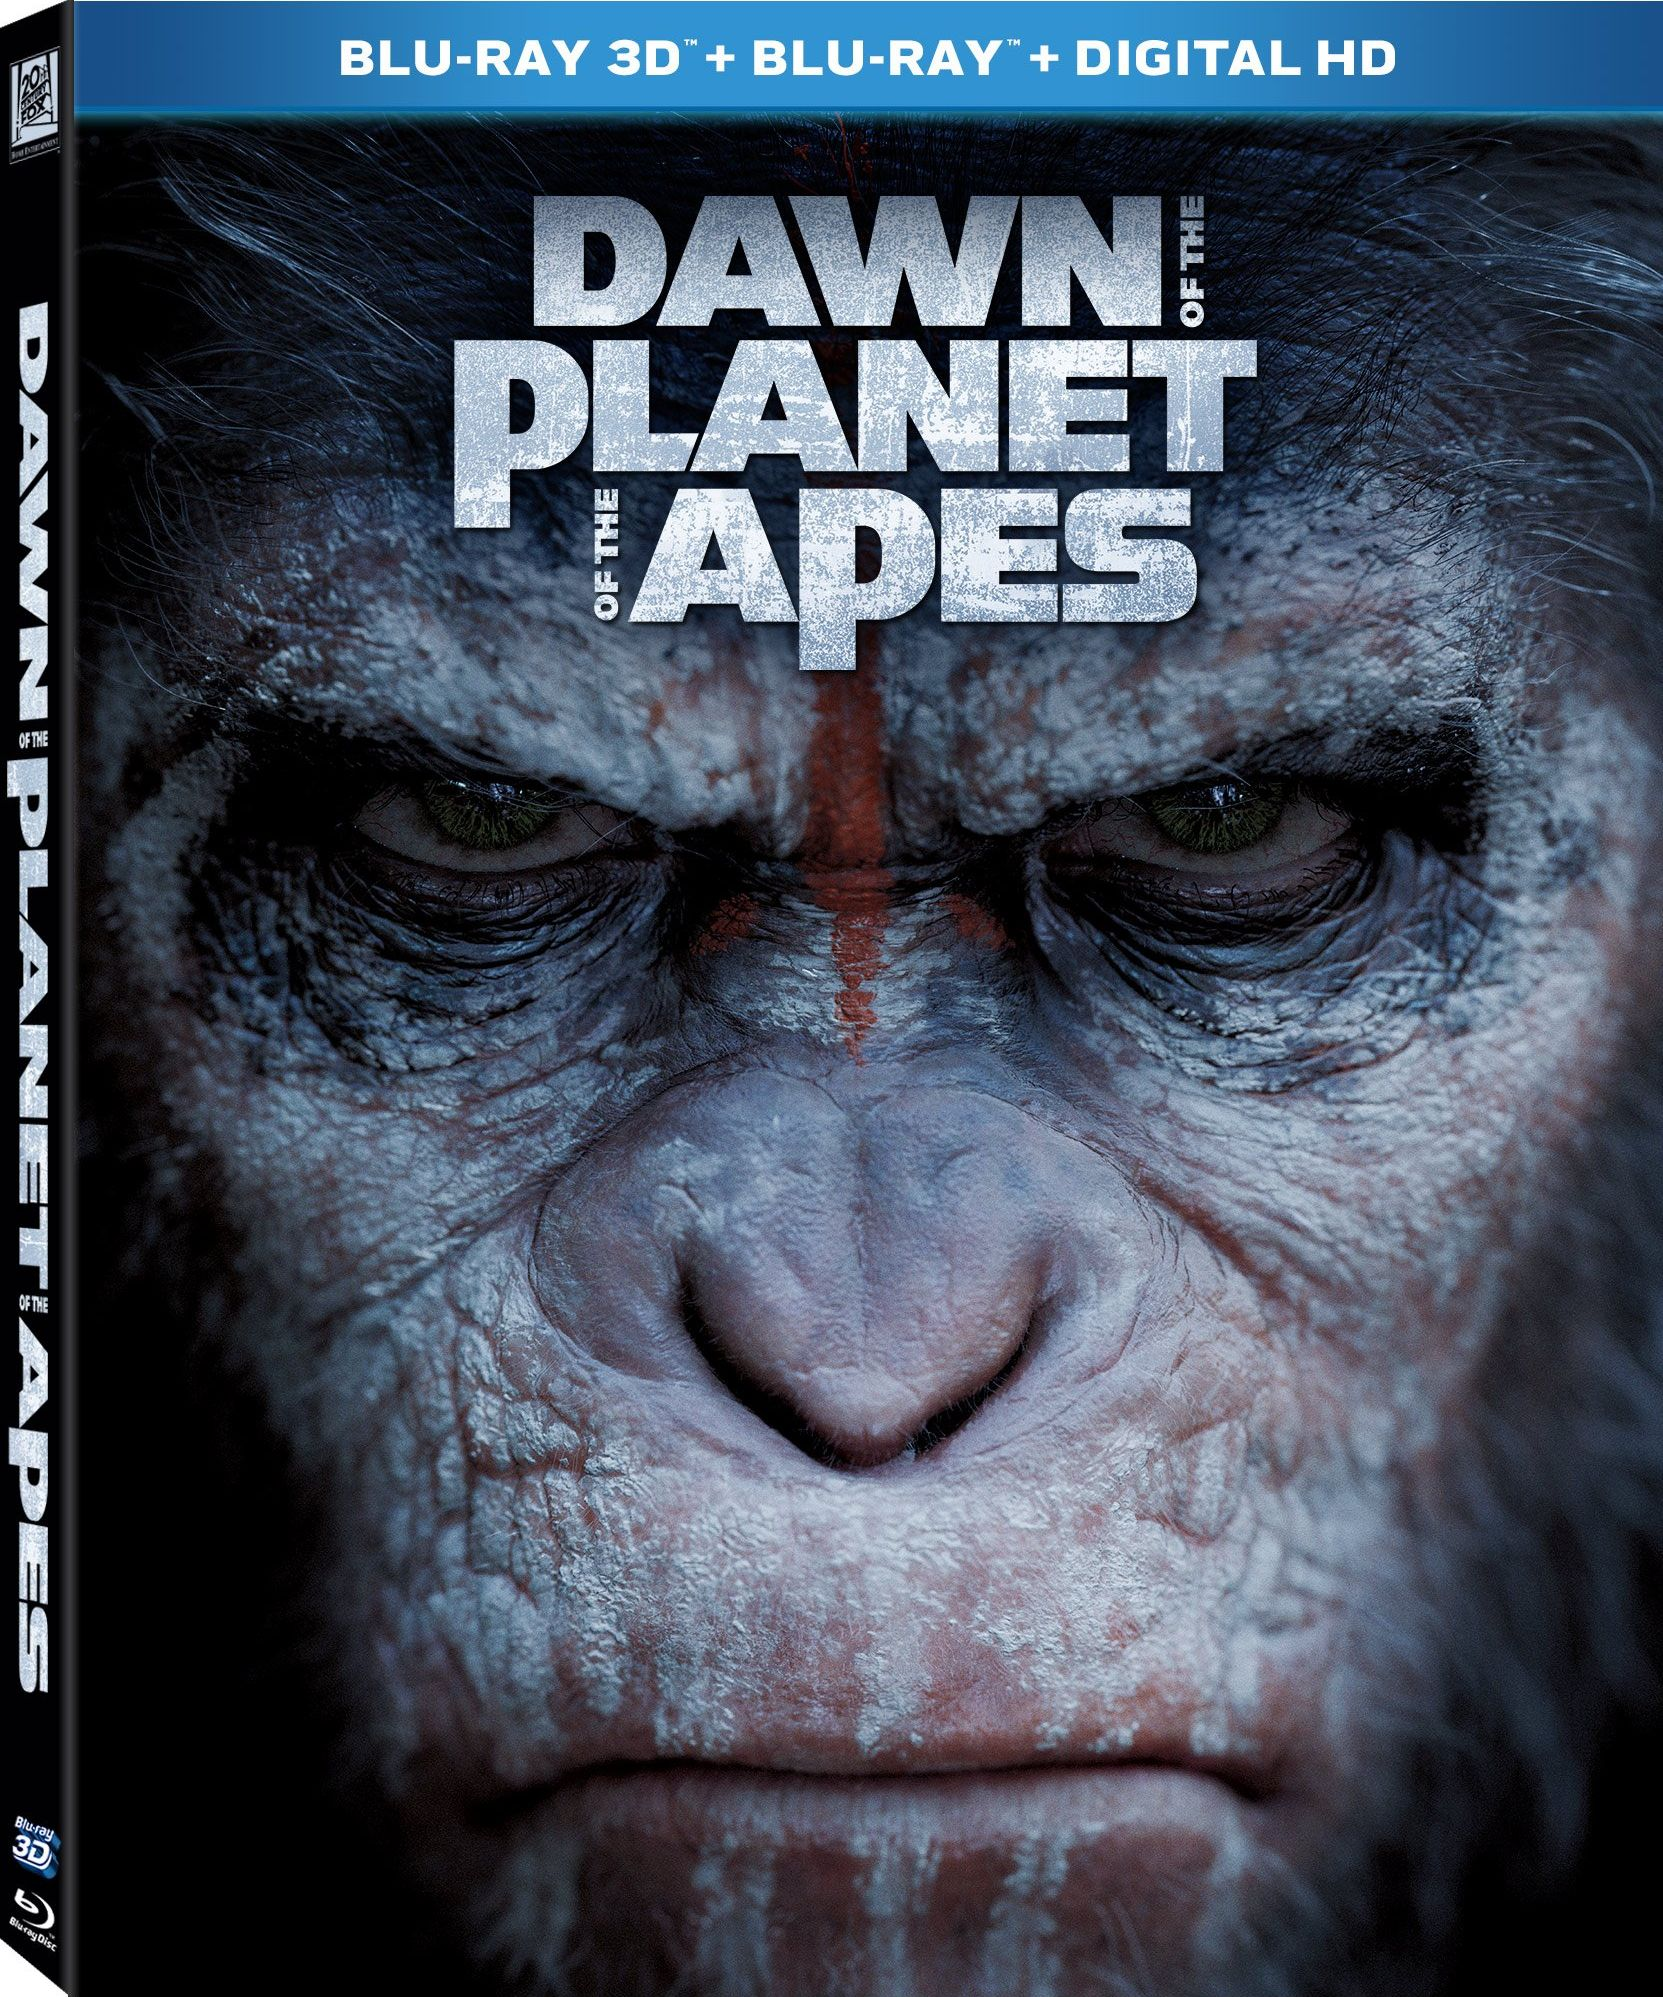 dawnof the planet of the apes